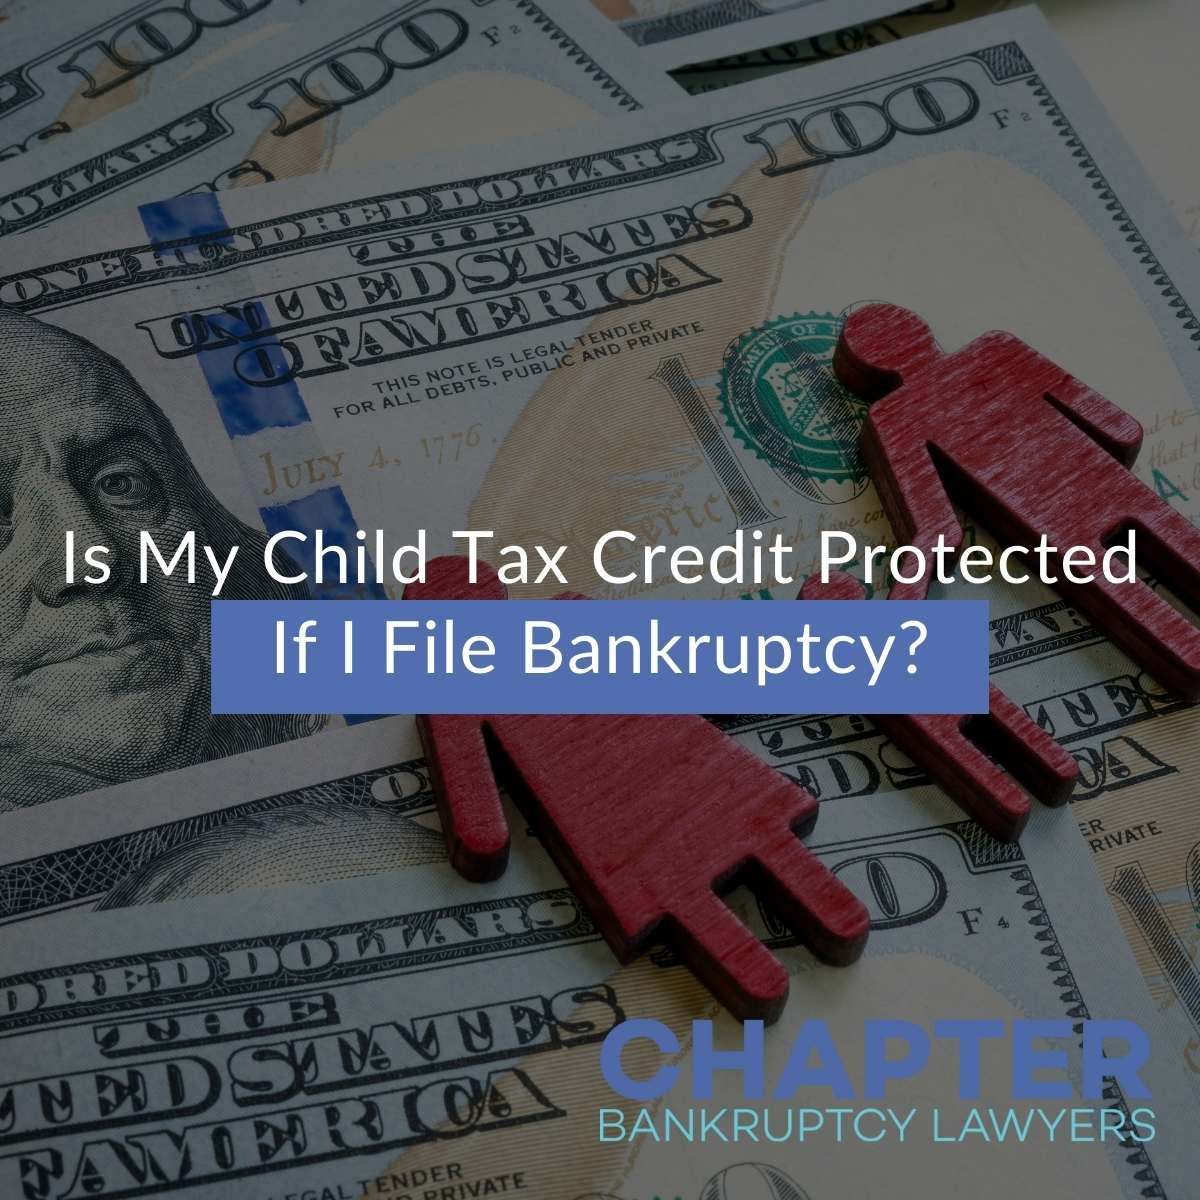 Is My Child Tax Credit Protected If I File Bankruptcy?